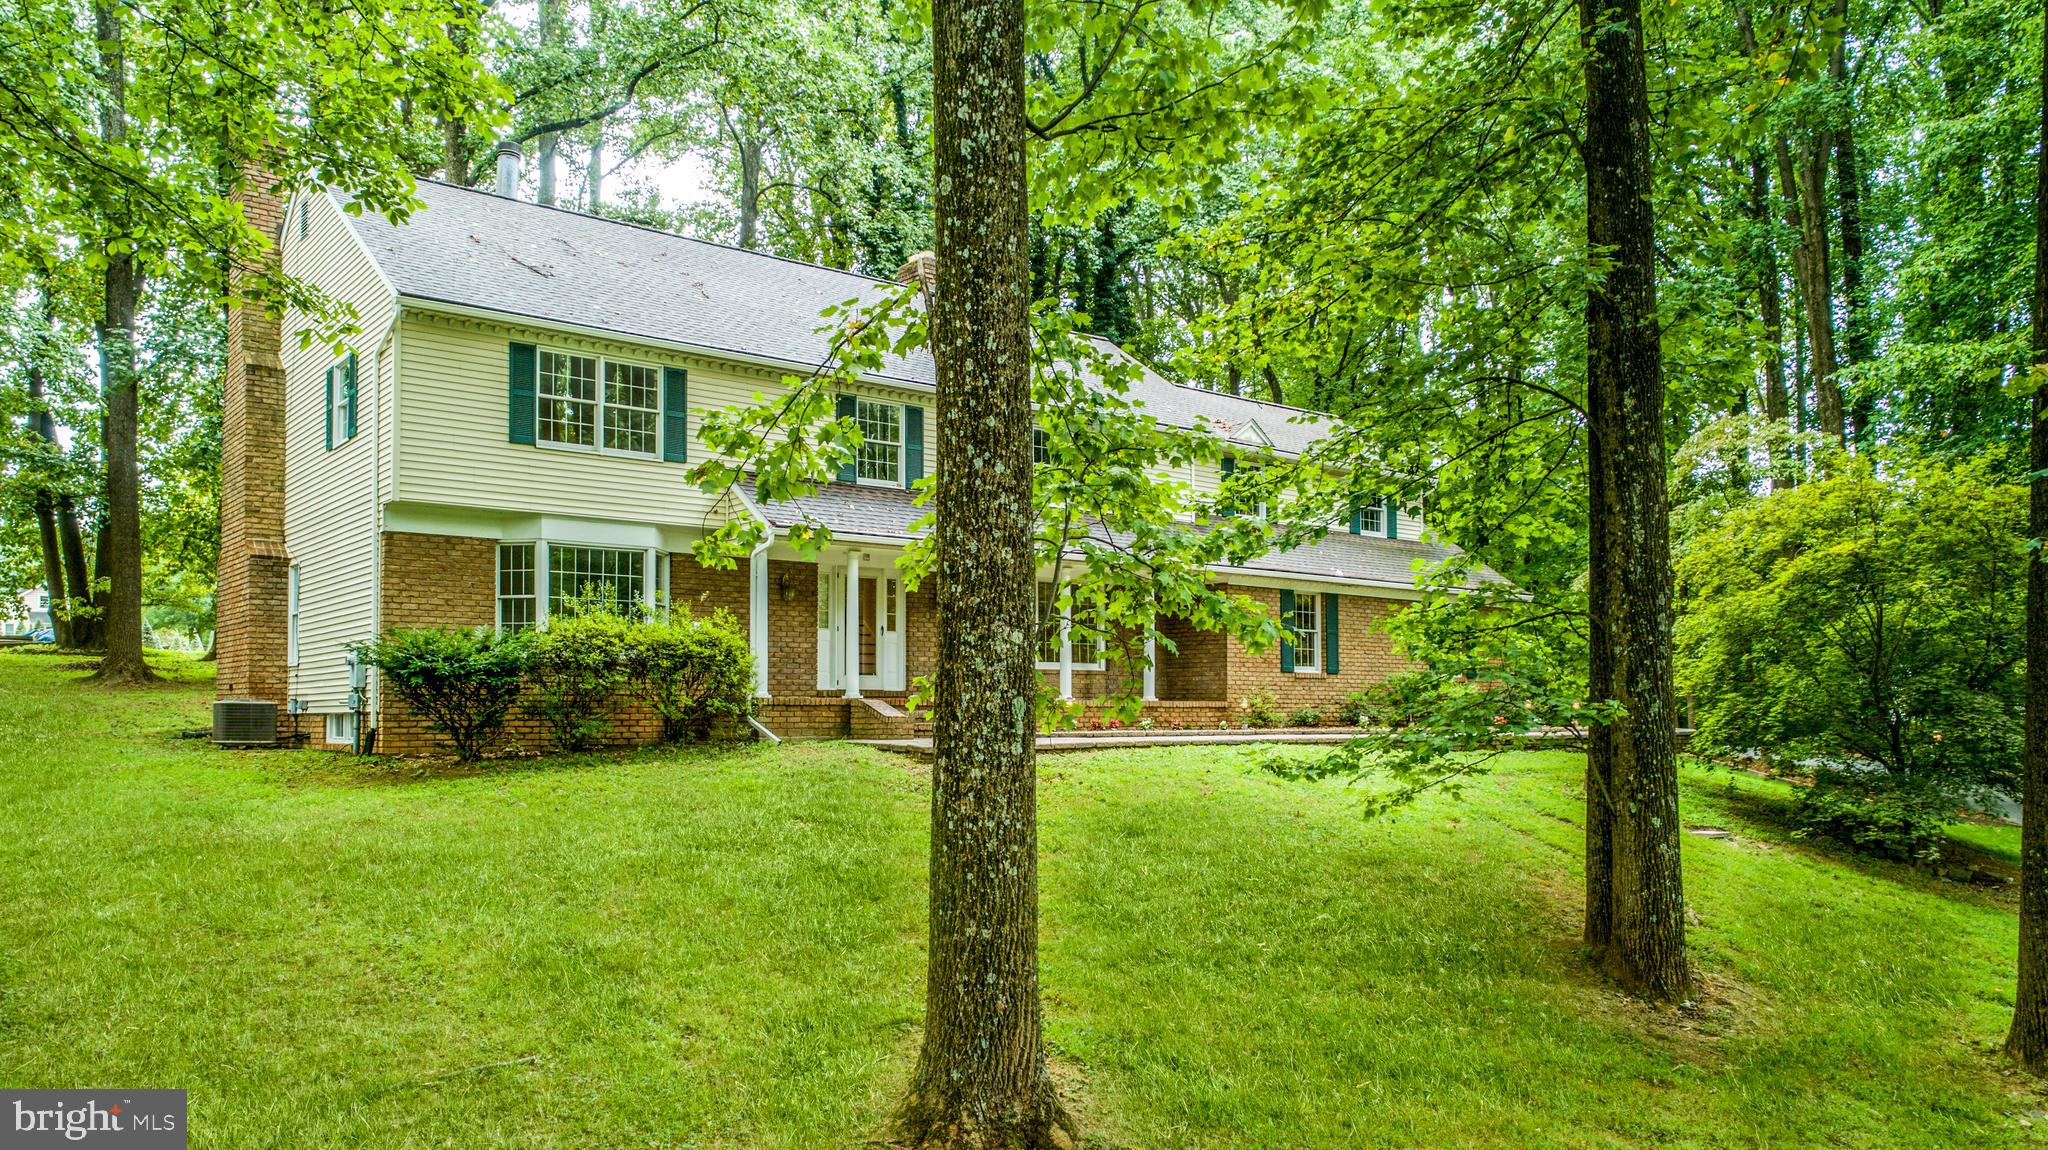 1403 BEETREE COURT, BEL AIR, MD 21014